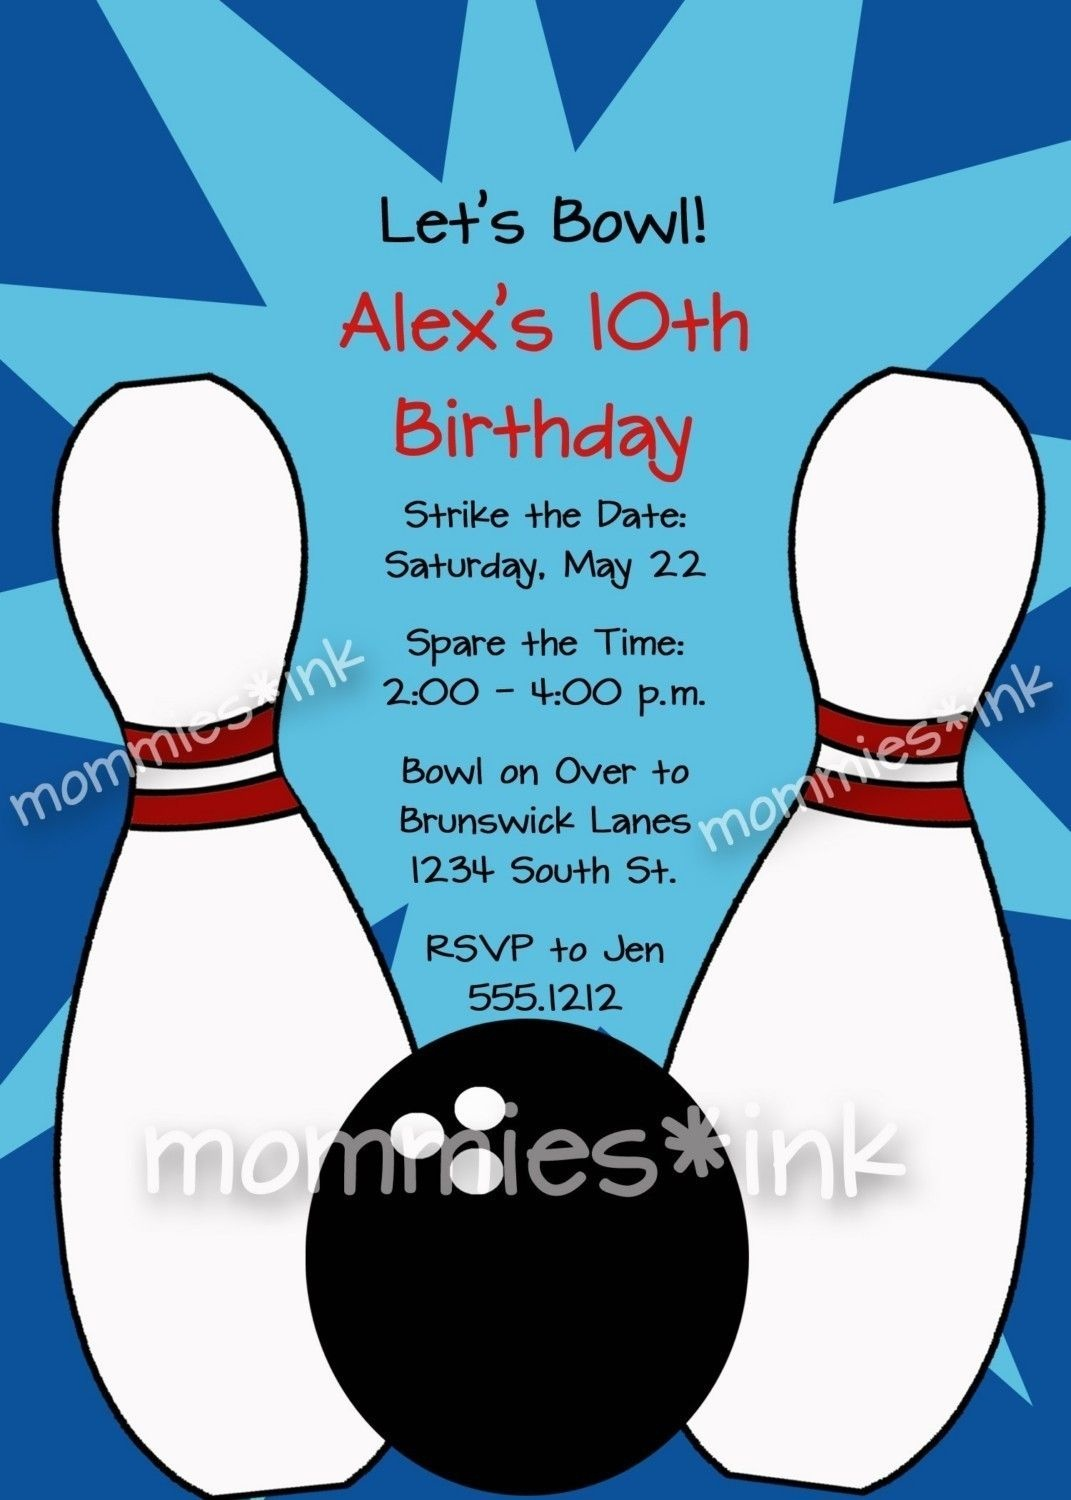 Free Bowling Party Invitations Templates With Blue Background Colors - Free Printable Bowling Invitation Templates